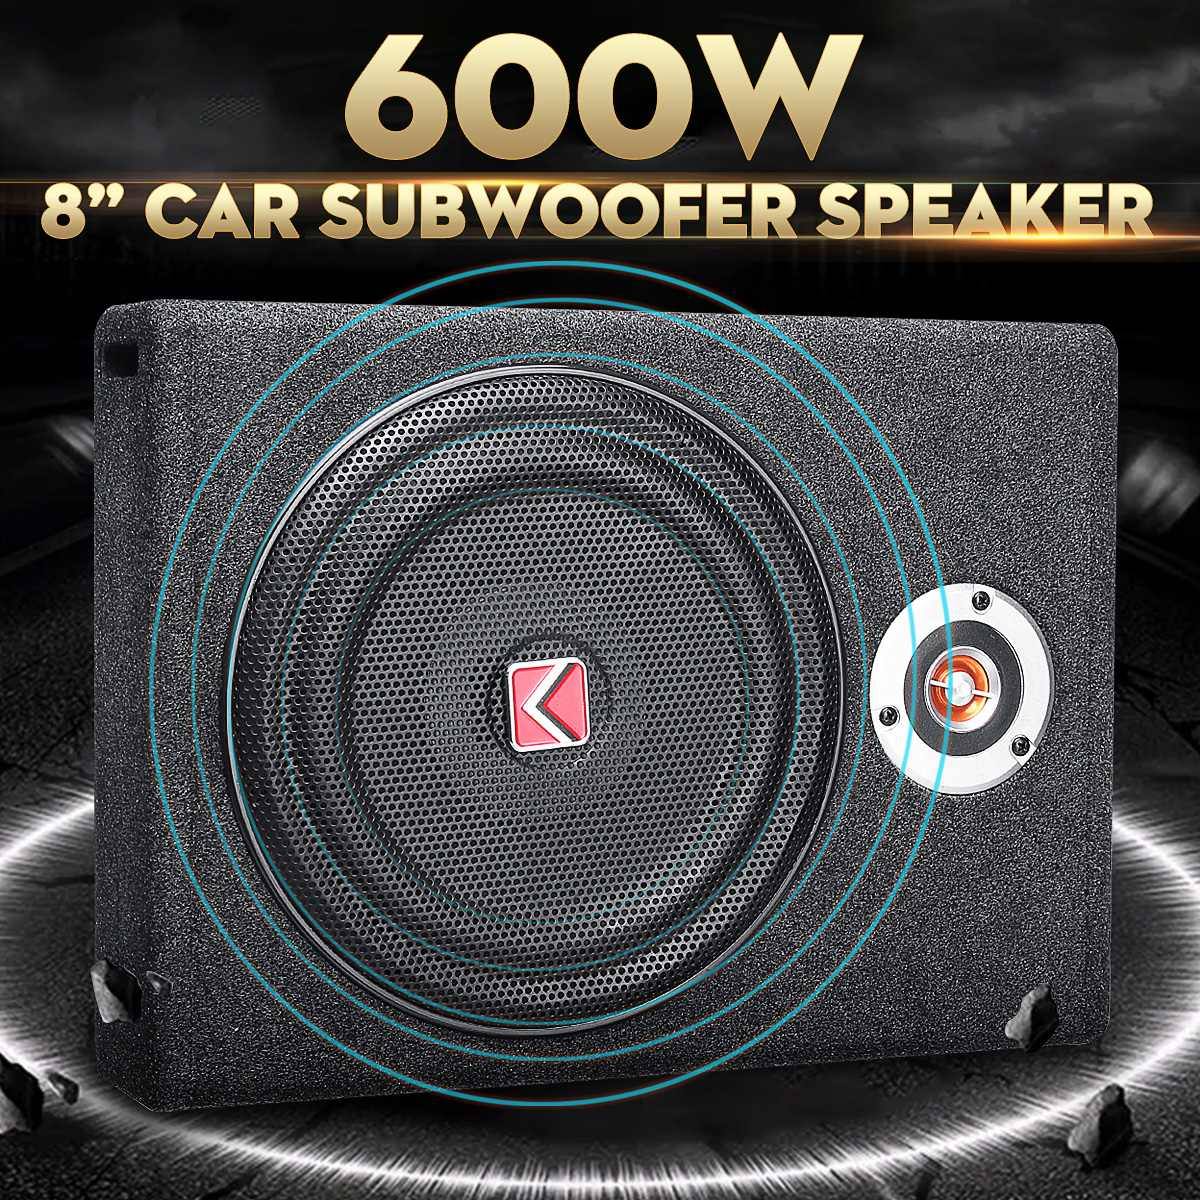 Power-Amplifier Speaker Subwoofers Audio Bass Active Under-Seat Slim 600W Music Car Stereo